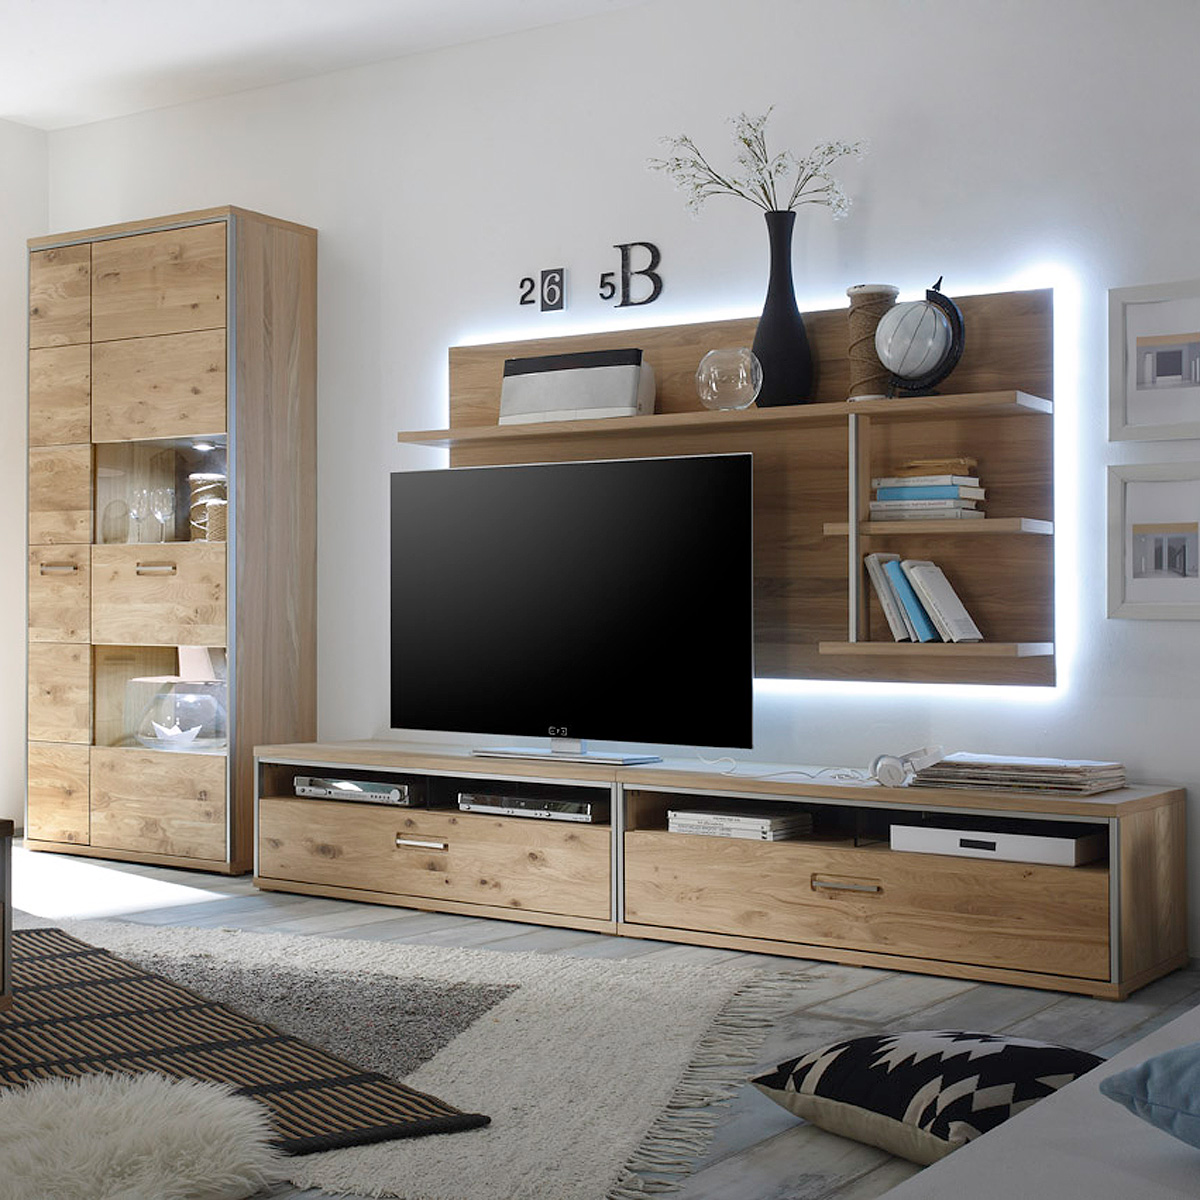 wohnwand 3 espero anbauwand wohnzimmer in ast eiche bianco. Black Bedroom Furniture Sets. Home Design Ideas